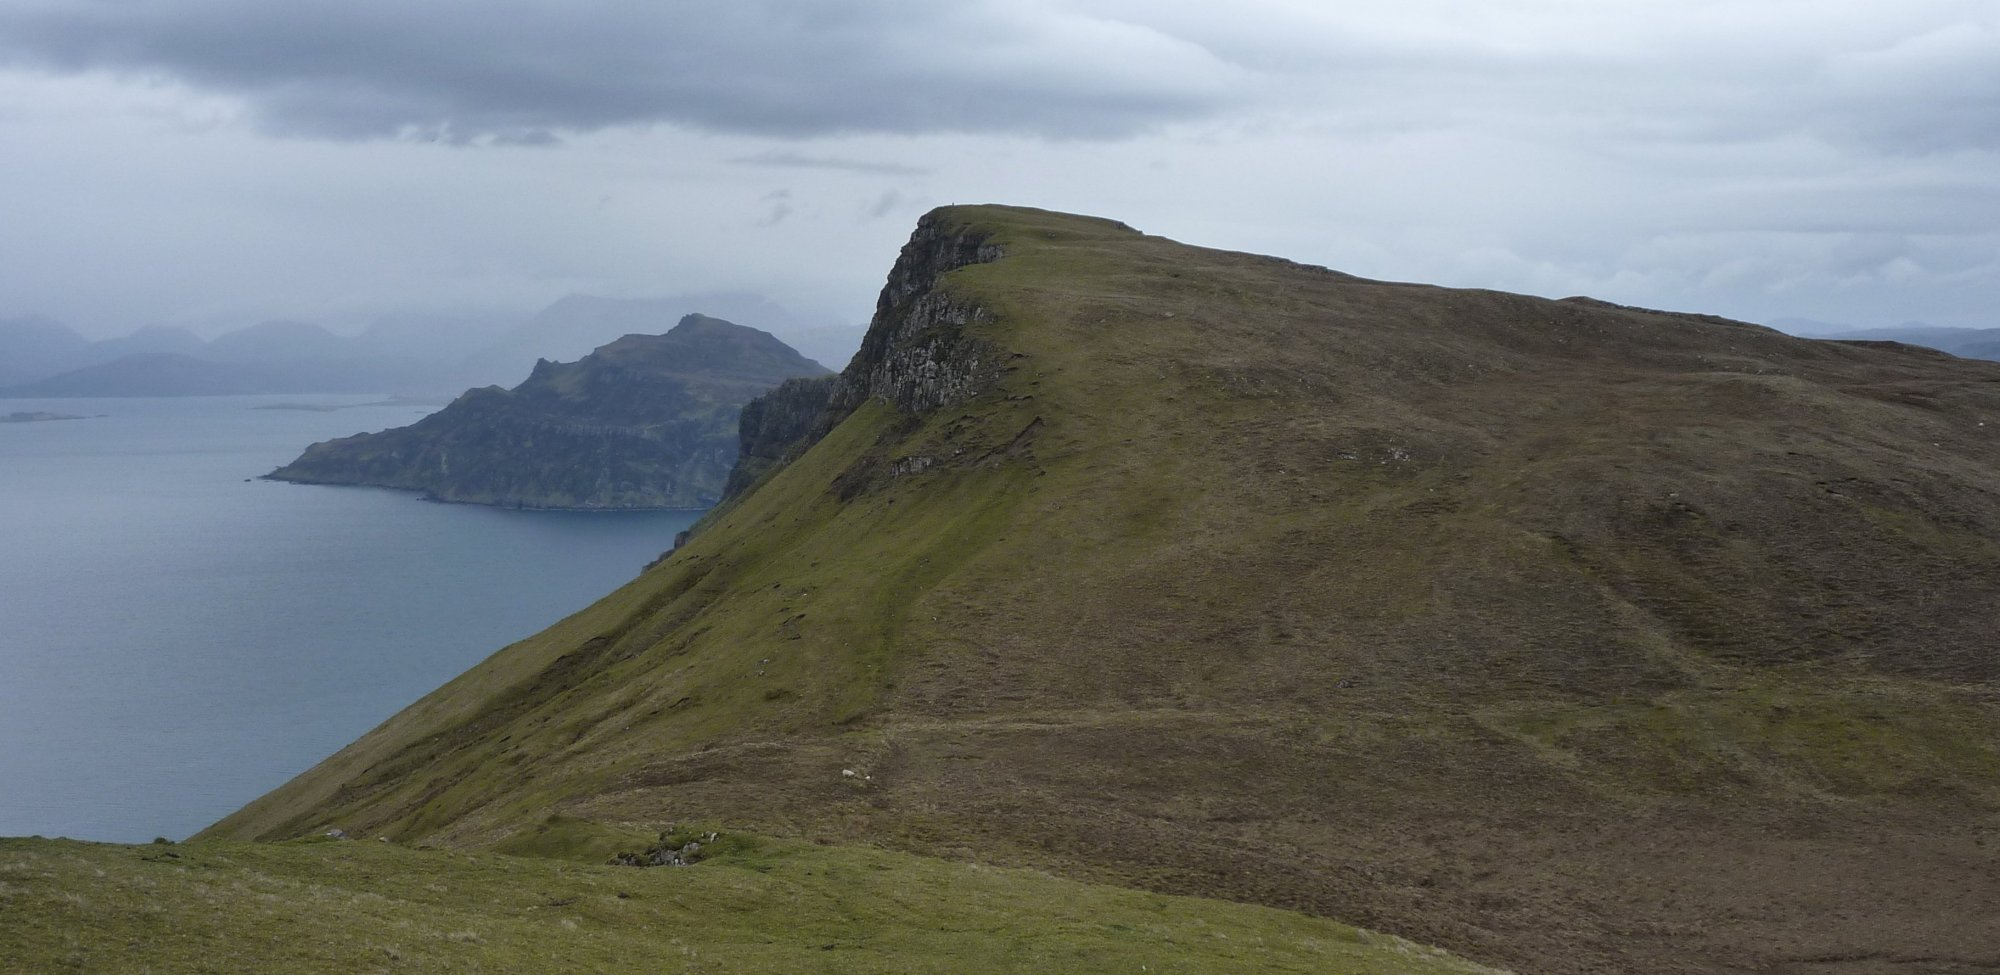 One final push to the top, Ben Tianavaig sticking it's head into the shot behind